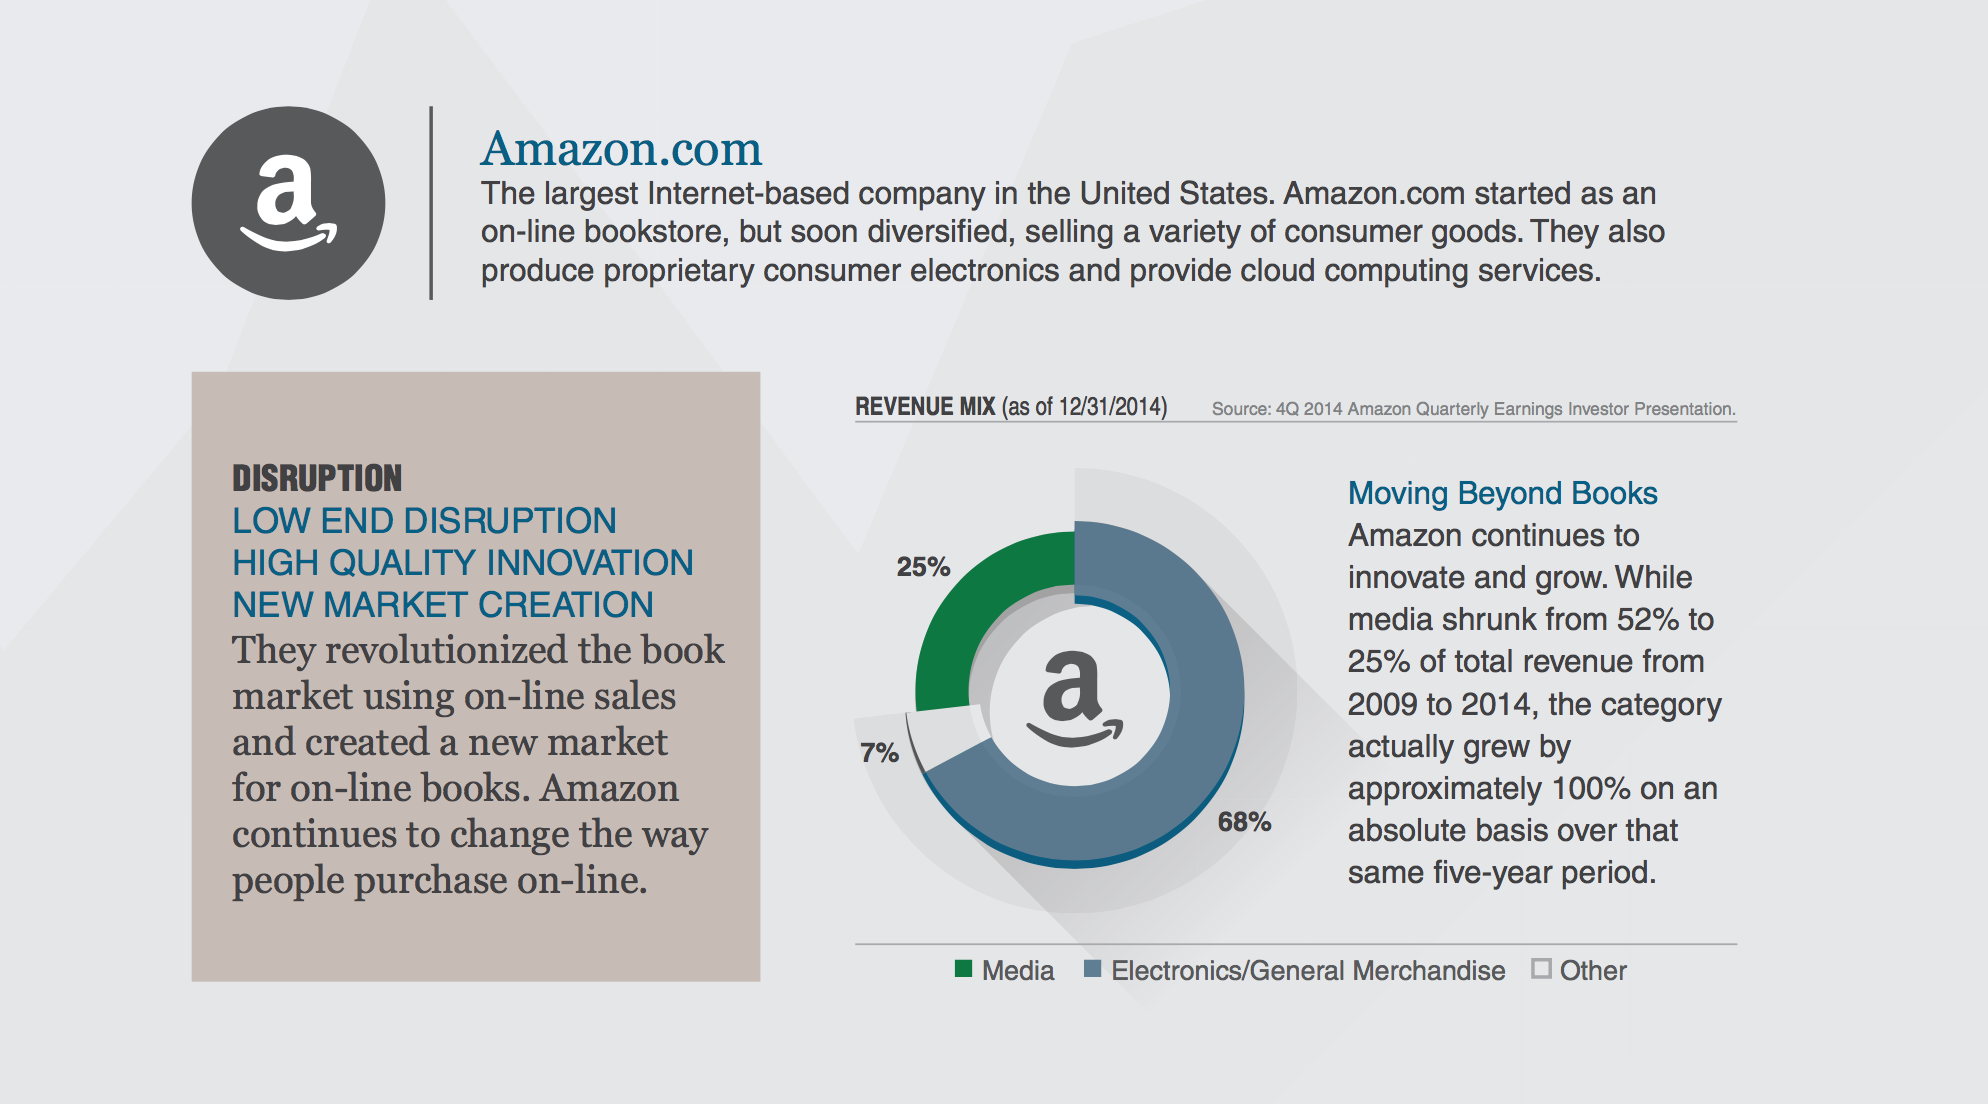 Amazon Disruptive Innovation LAM.png